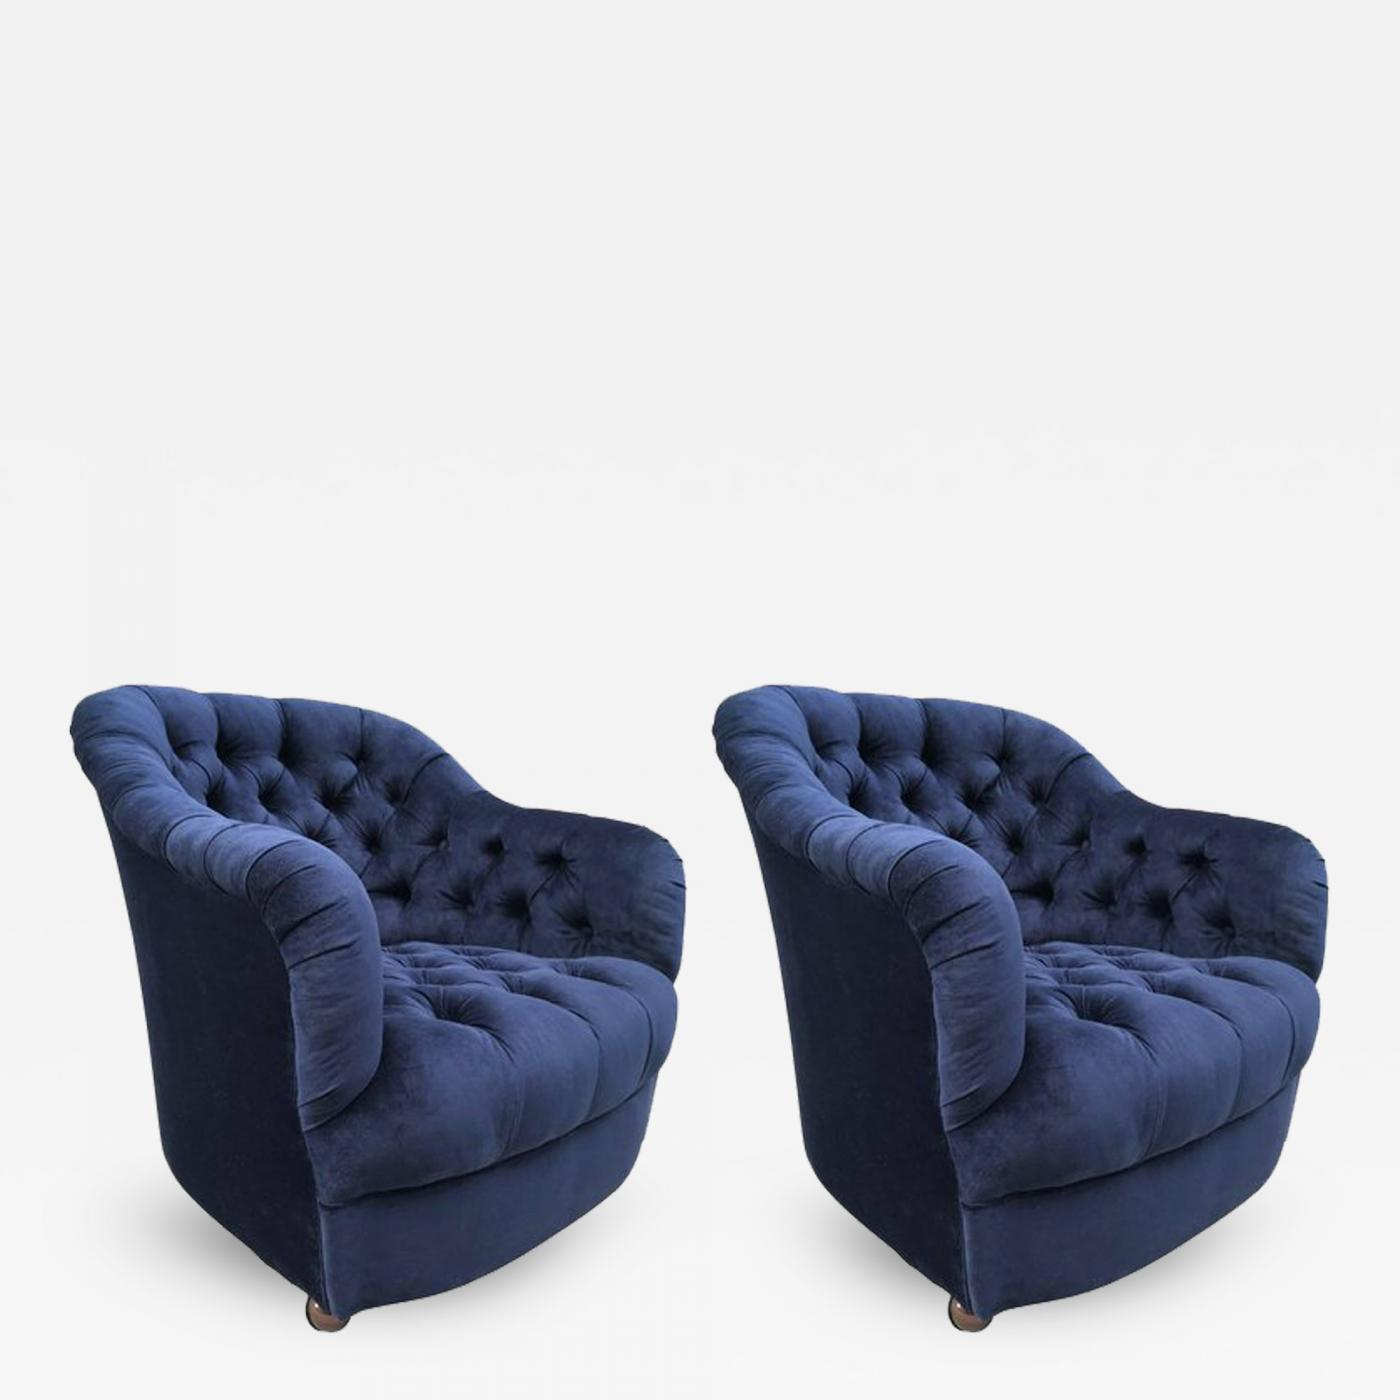 Listings / Furniture / Seating / Armchairs · Ward Bennett Pair Of Ward  Bennett Tufted Lounge Chairs ...